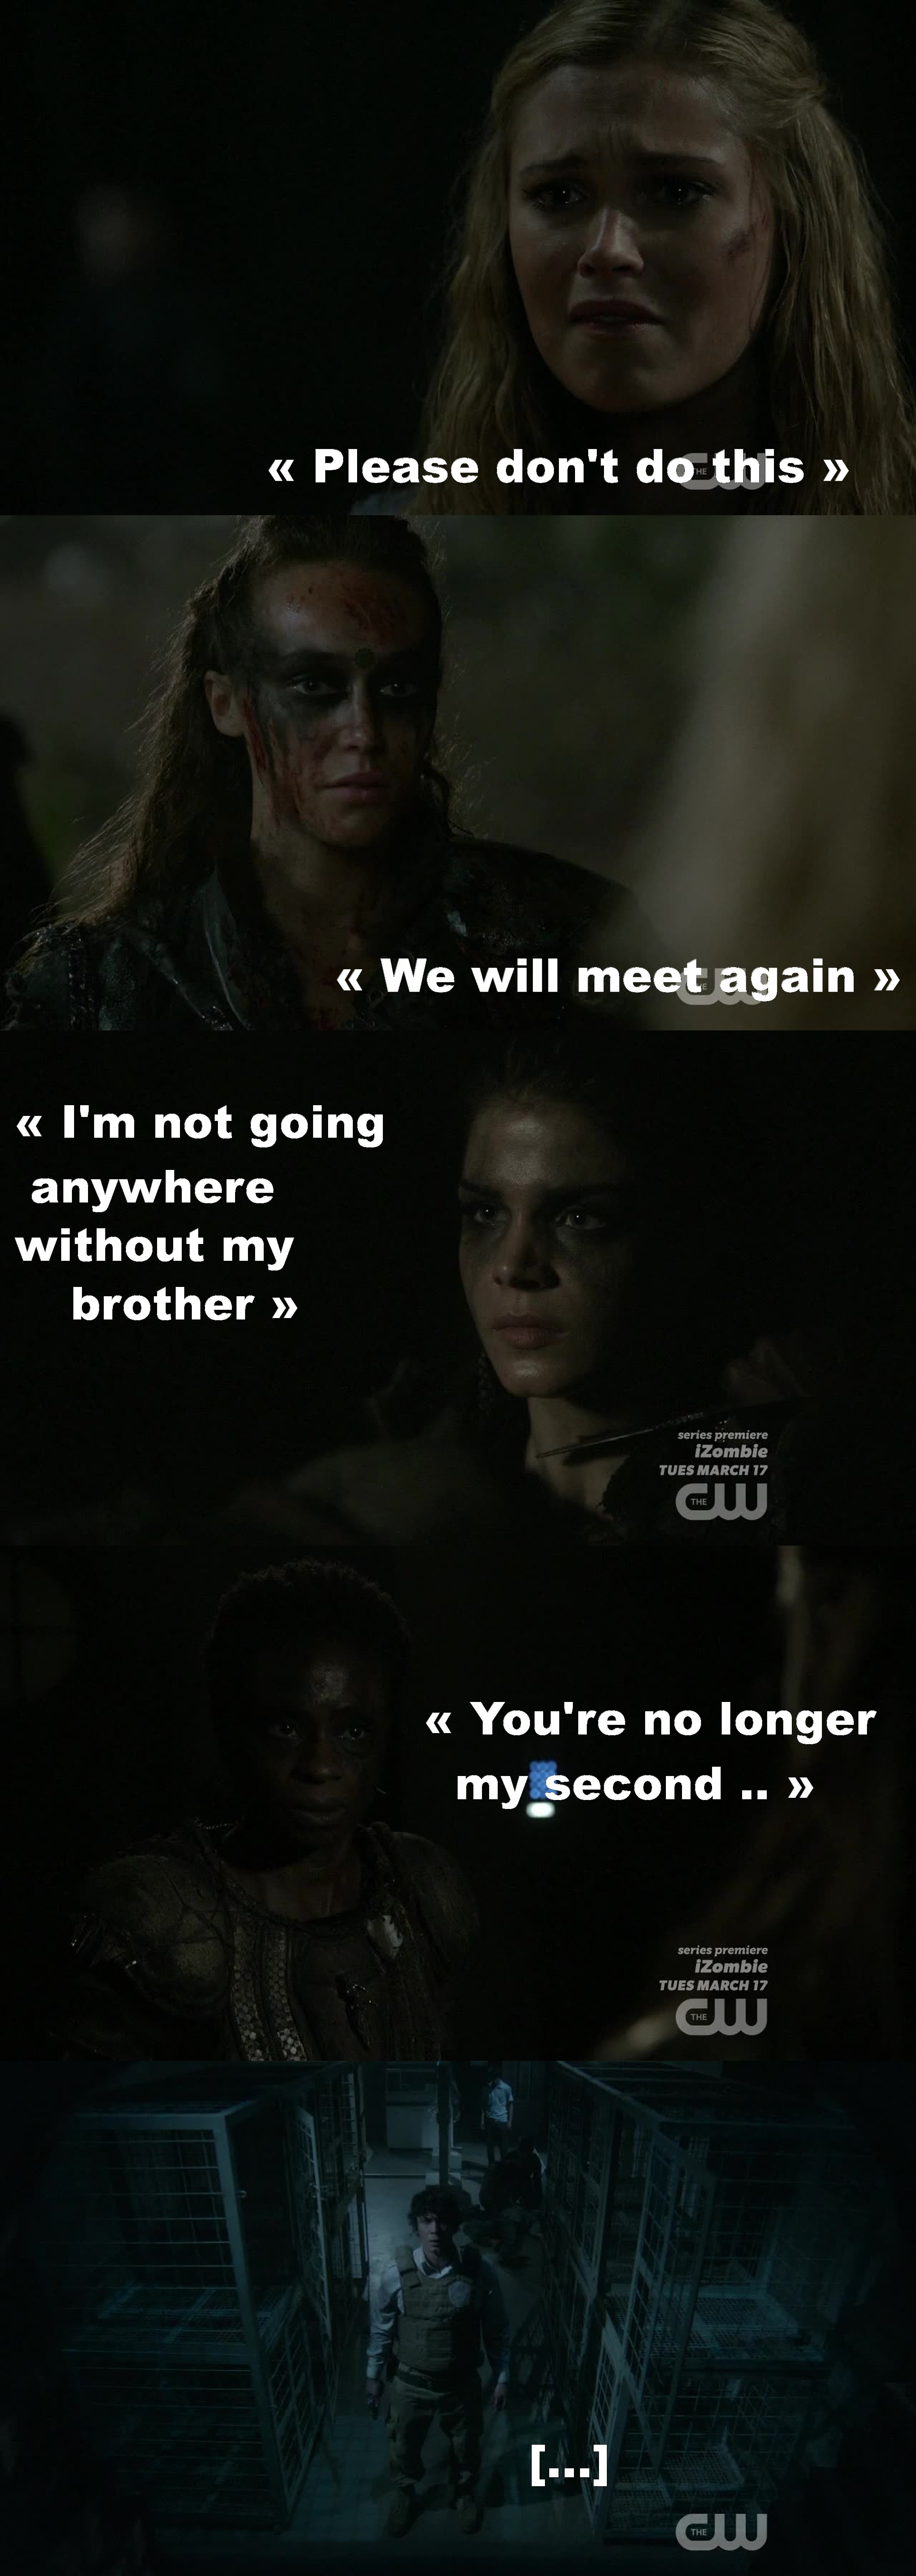 HOLY SHIT !!! I can't believe this ! It started all well, they were united and powerful together in this war, as one people « Blood must have blood » I had chills everywhere as they were getting ready to fight ! And the shared leadership between Lexa and Clarke had an amazing intensity and chemistry... I can't believe she just blew all this away !!!  So TRAGIC ! I can't get over it. Clarke left alone in front of this big door just broke my heart, same for Octavia and same for Bellamy   This show keeps blowing my mind week after week